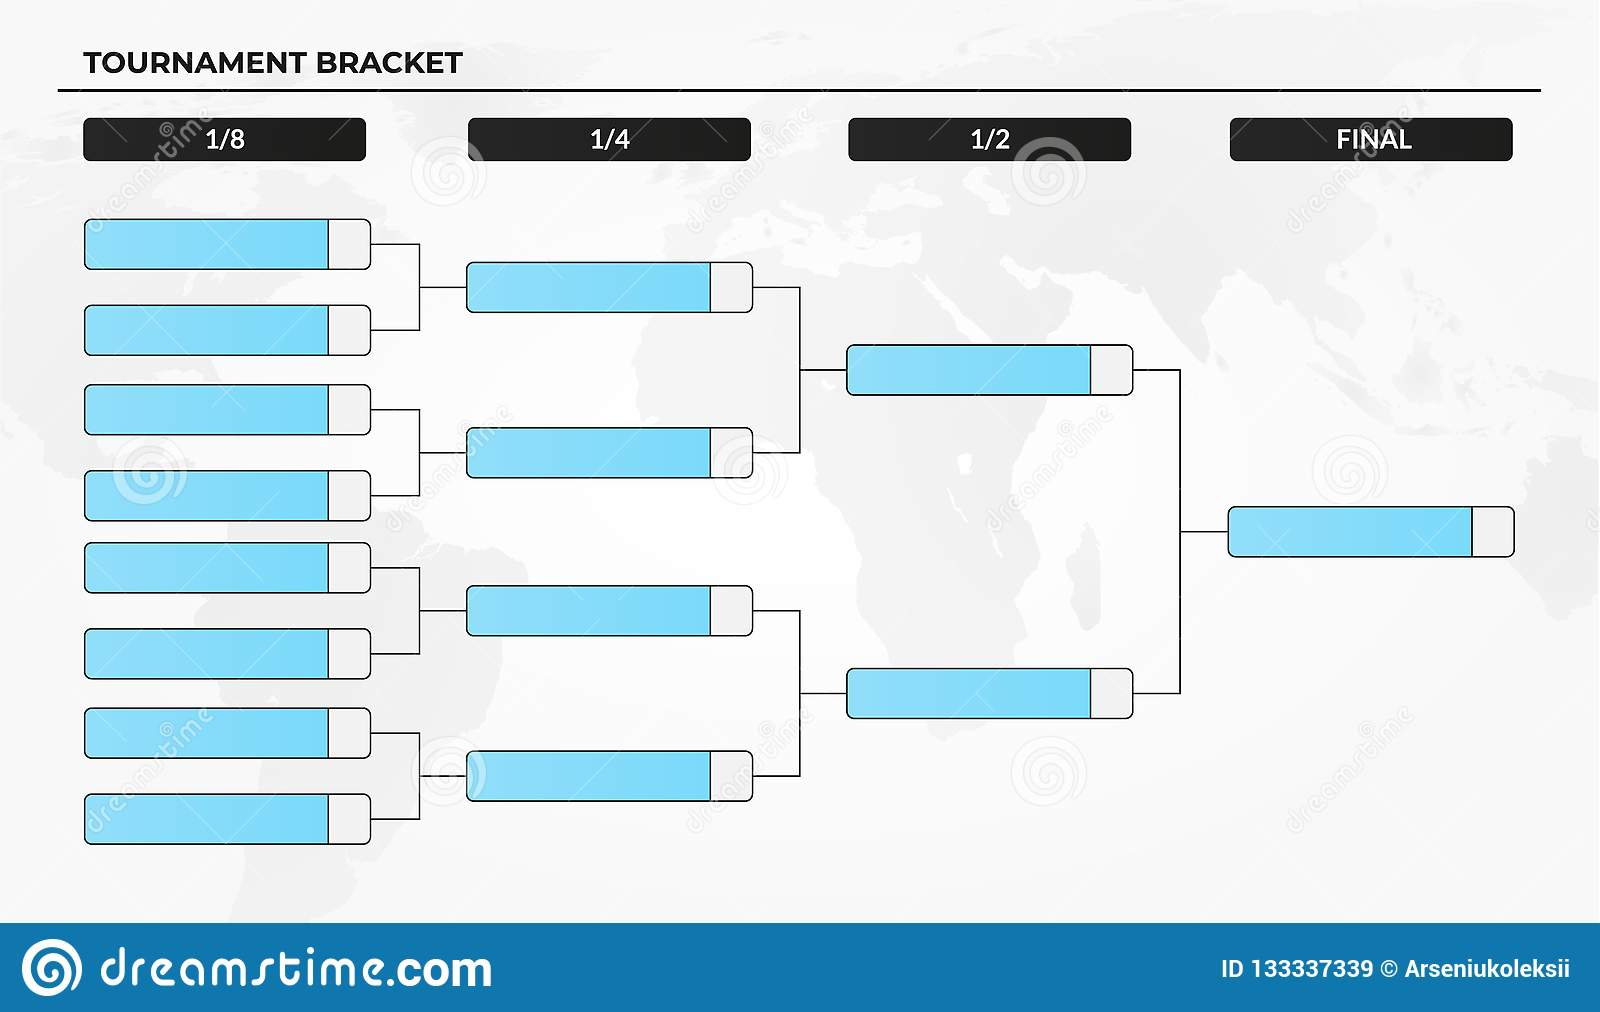 graphic regarding Printable World Cup Bracket called Blank Event Bracket Template For World-wide Cup Compeions